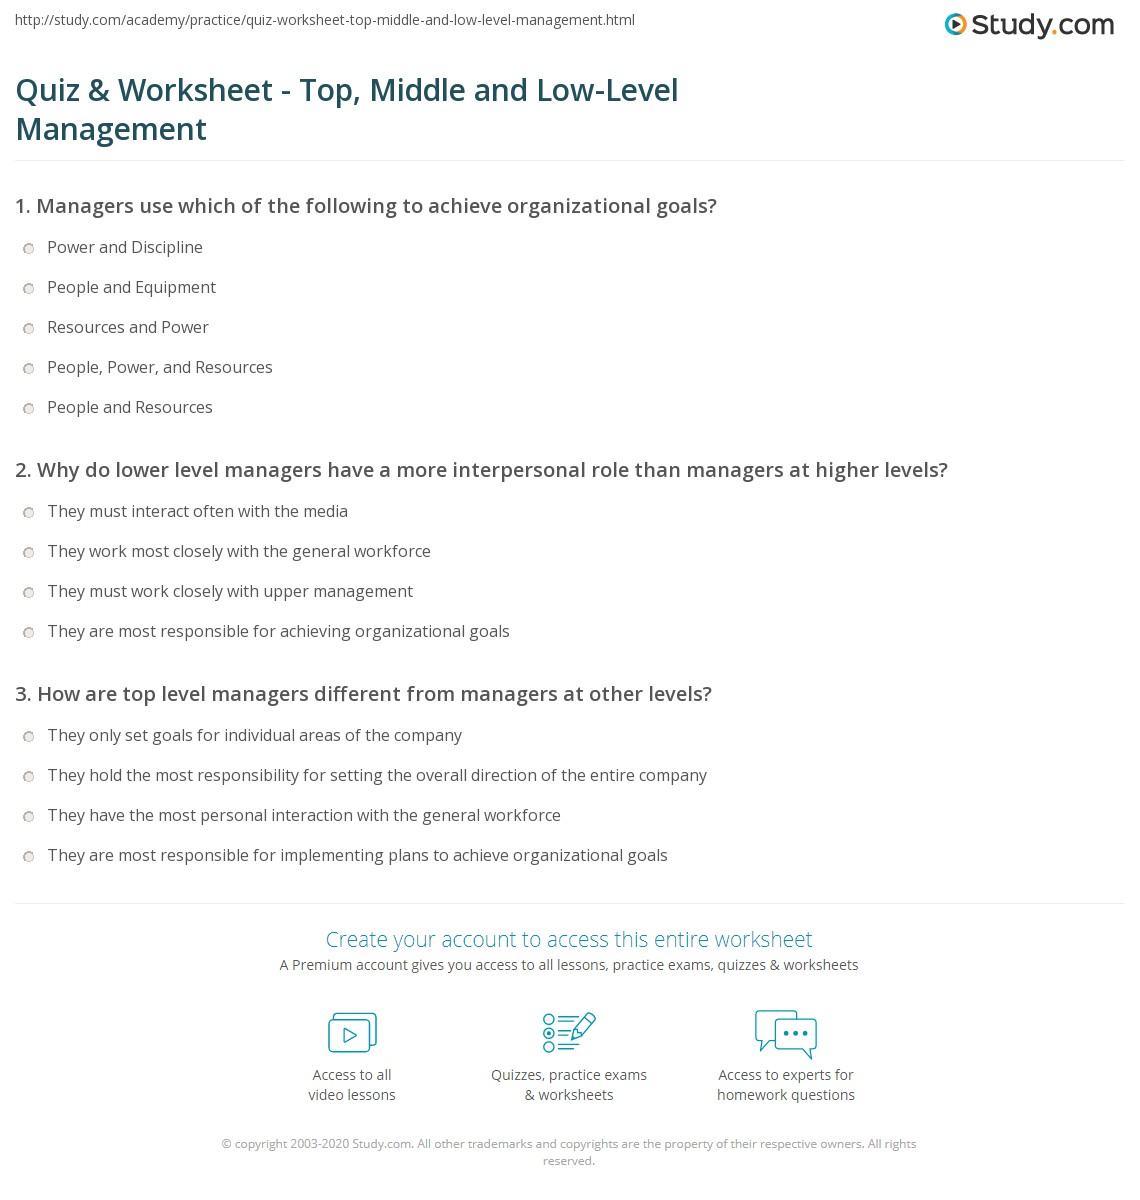 Quiz & Worksheet - Top, Middle and Low-Level Management | Study.com